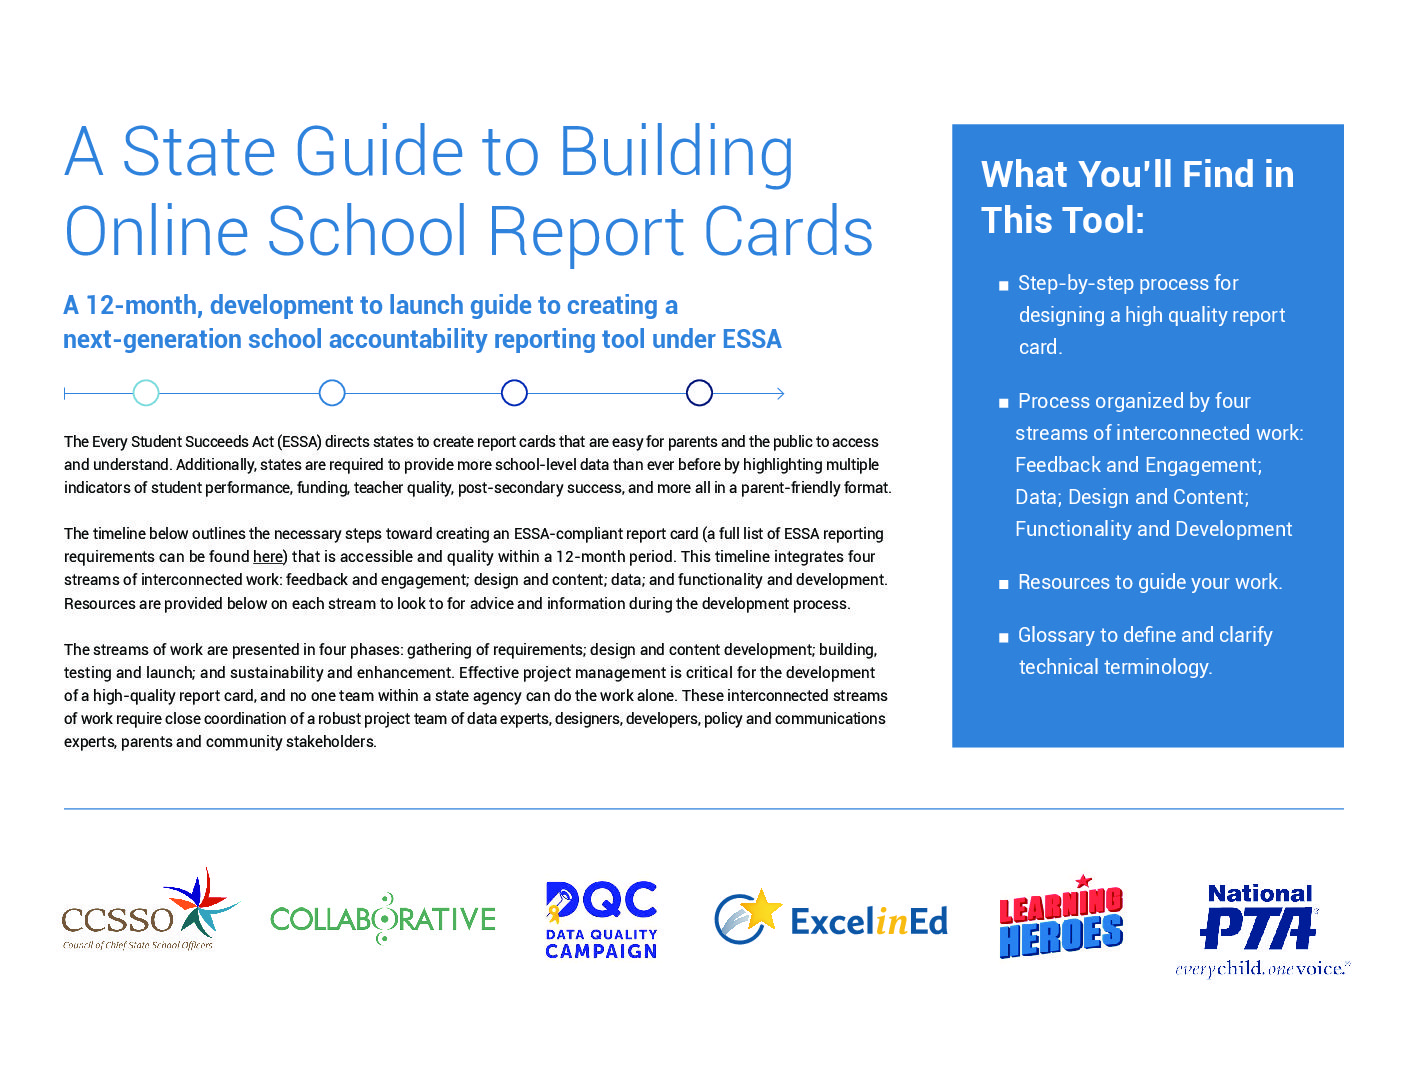 A State Guide to Building Online School Report Cards &#8211; May 2017>									 									</a> 									<a href=